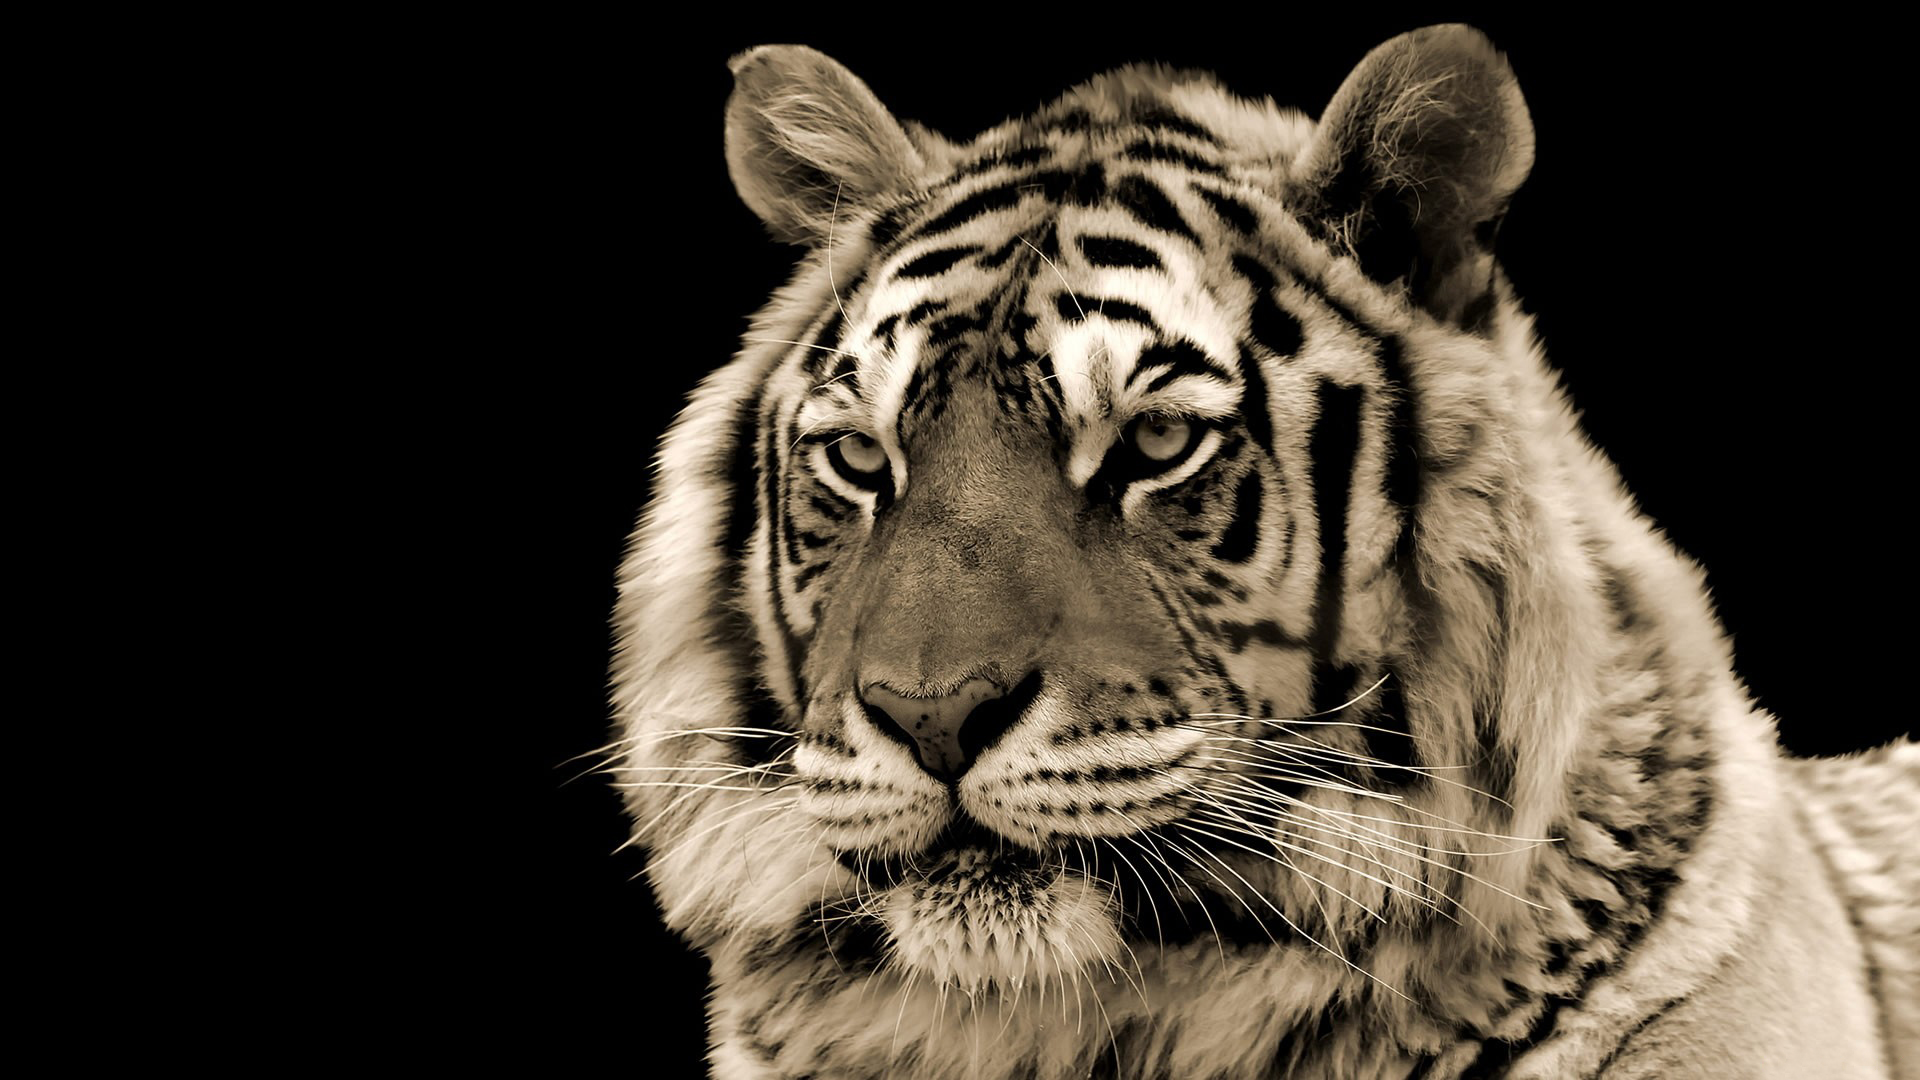 49 animated tiger wallpaper on wallpapersafari - Moving animal wallpapers ...